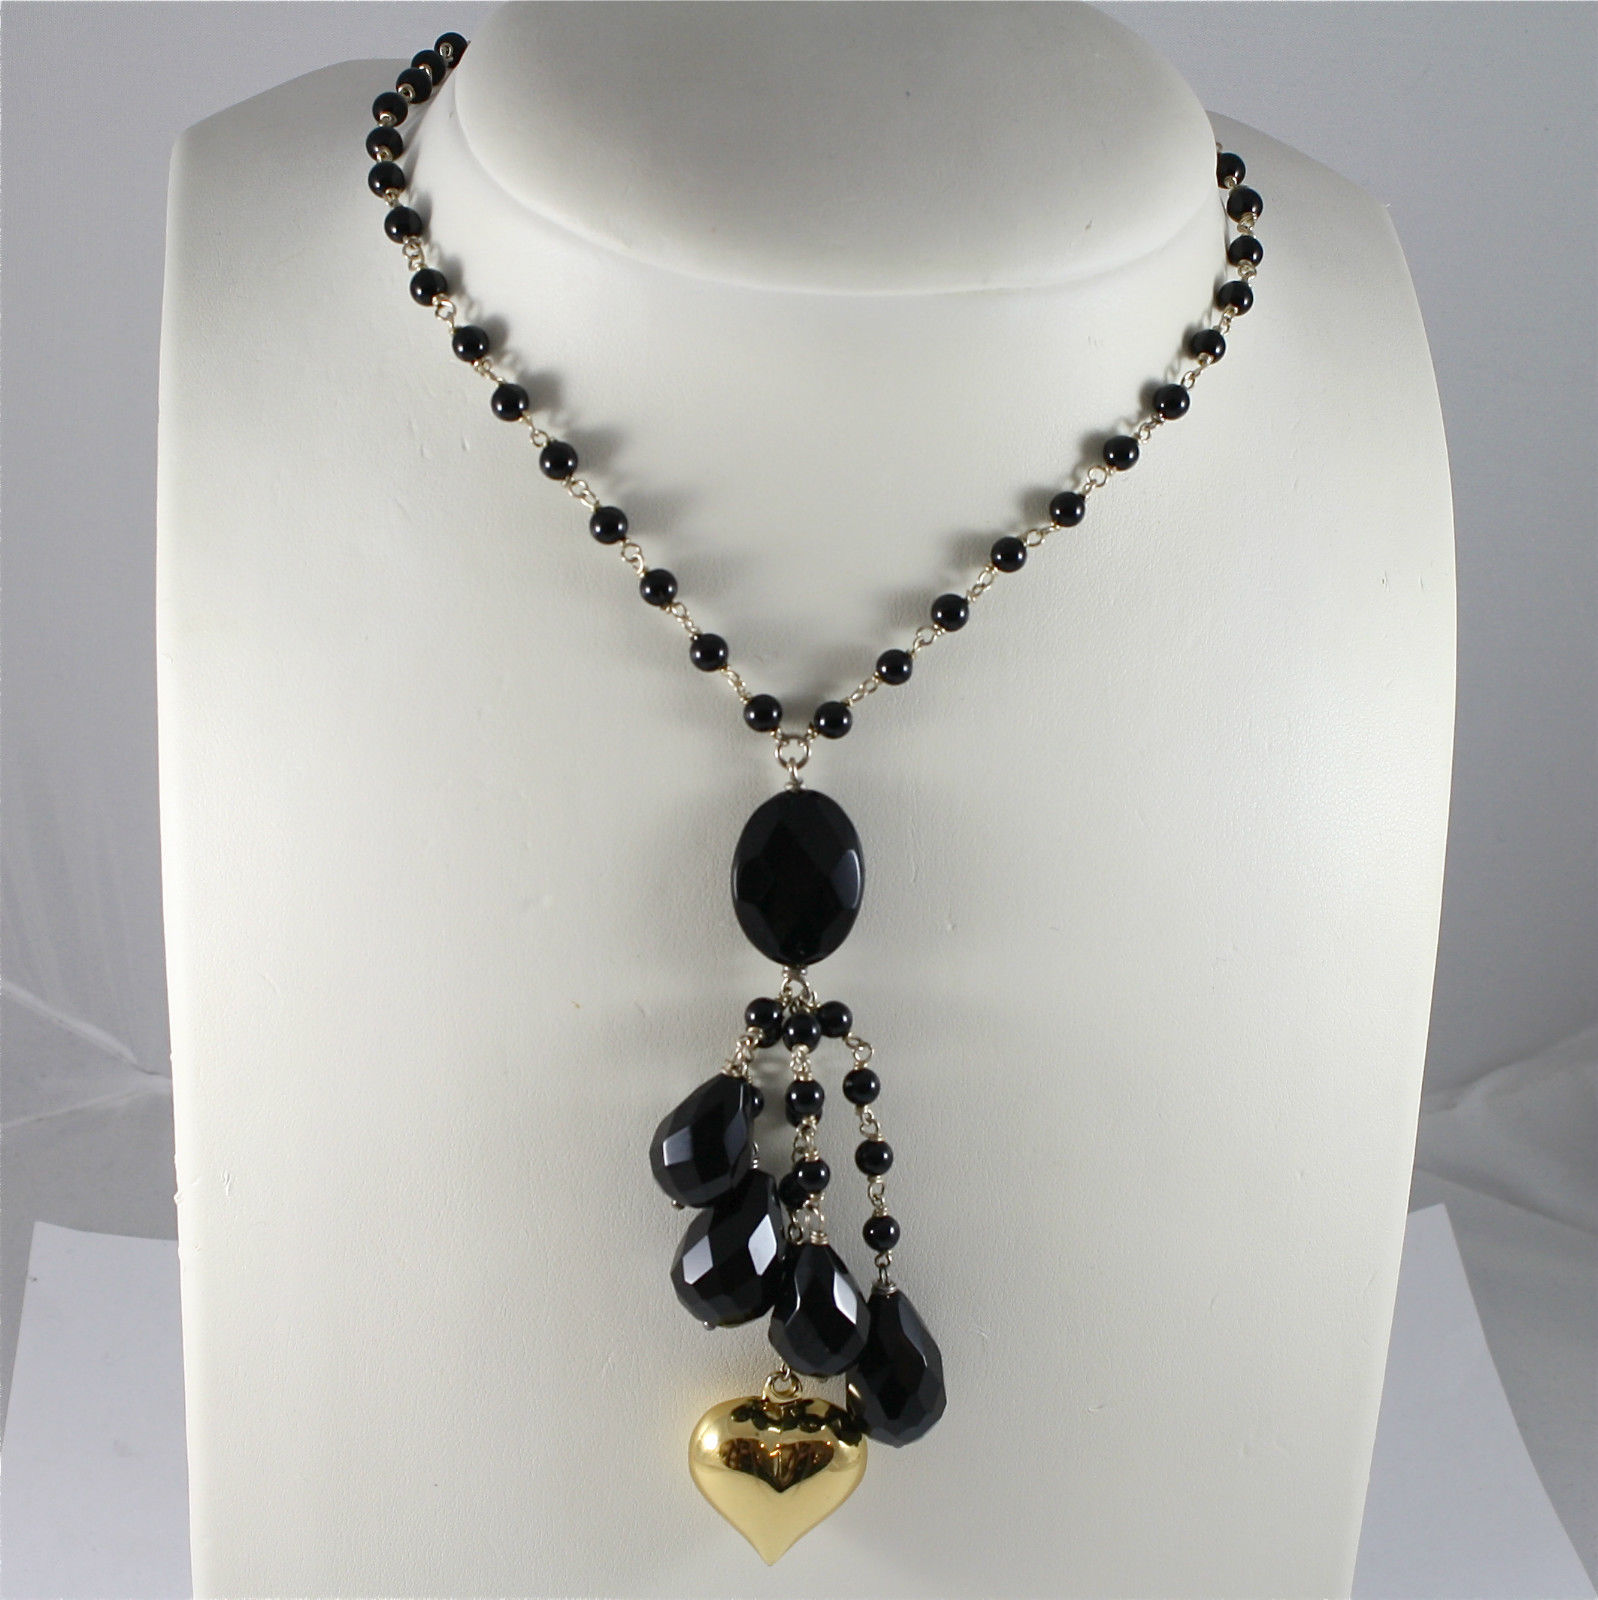 925 Silver Necklace Rhodium, Onyx Black, Waterfall with Gold Laminated heart